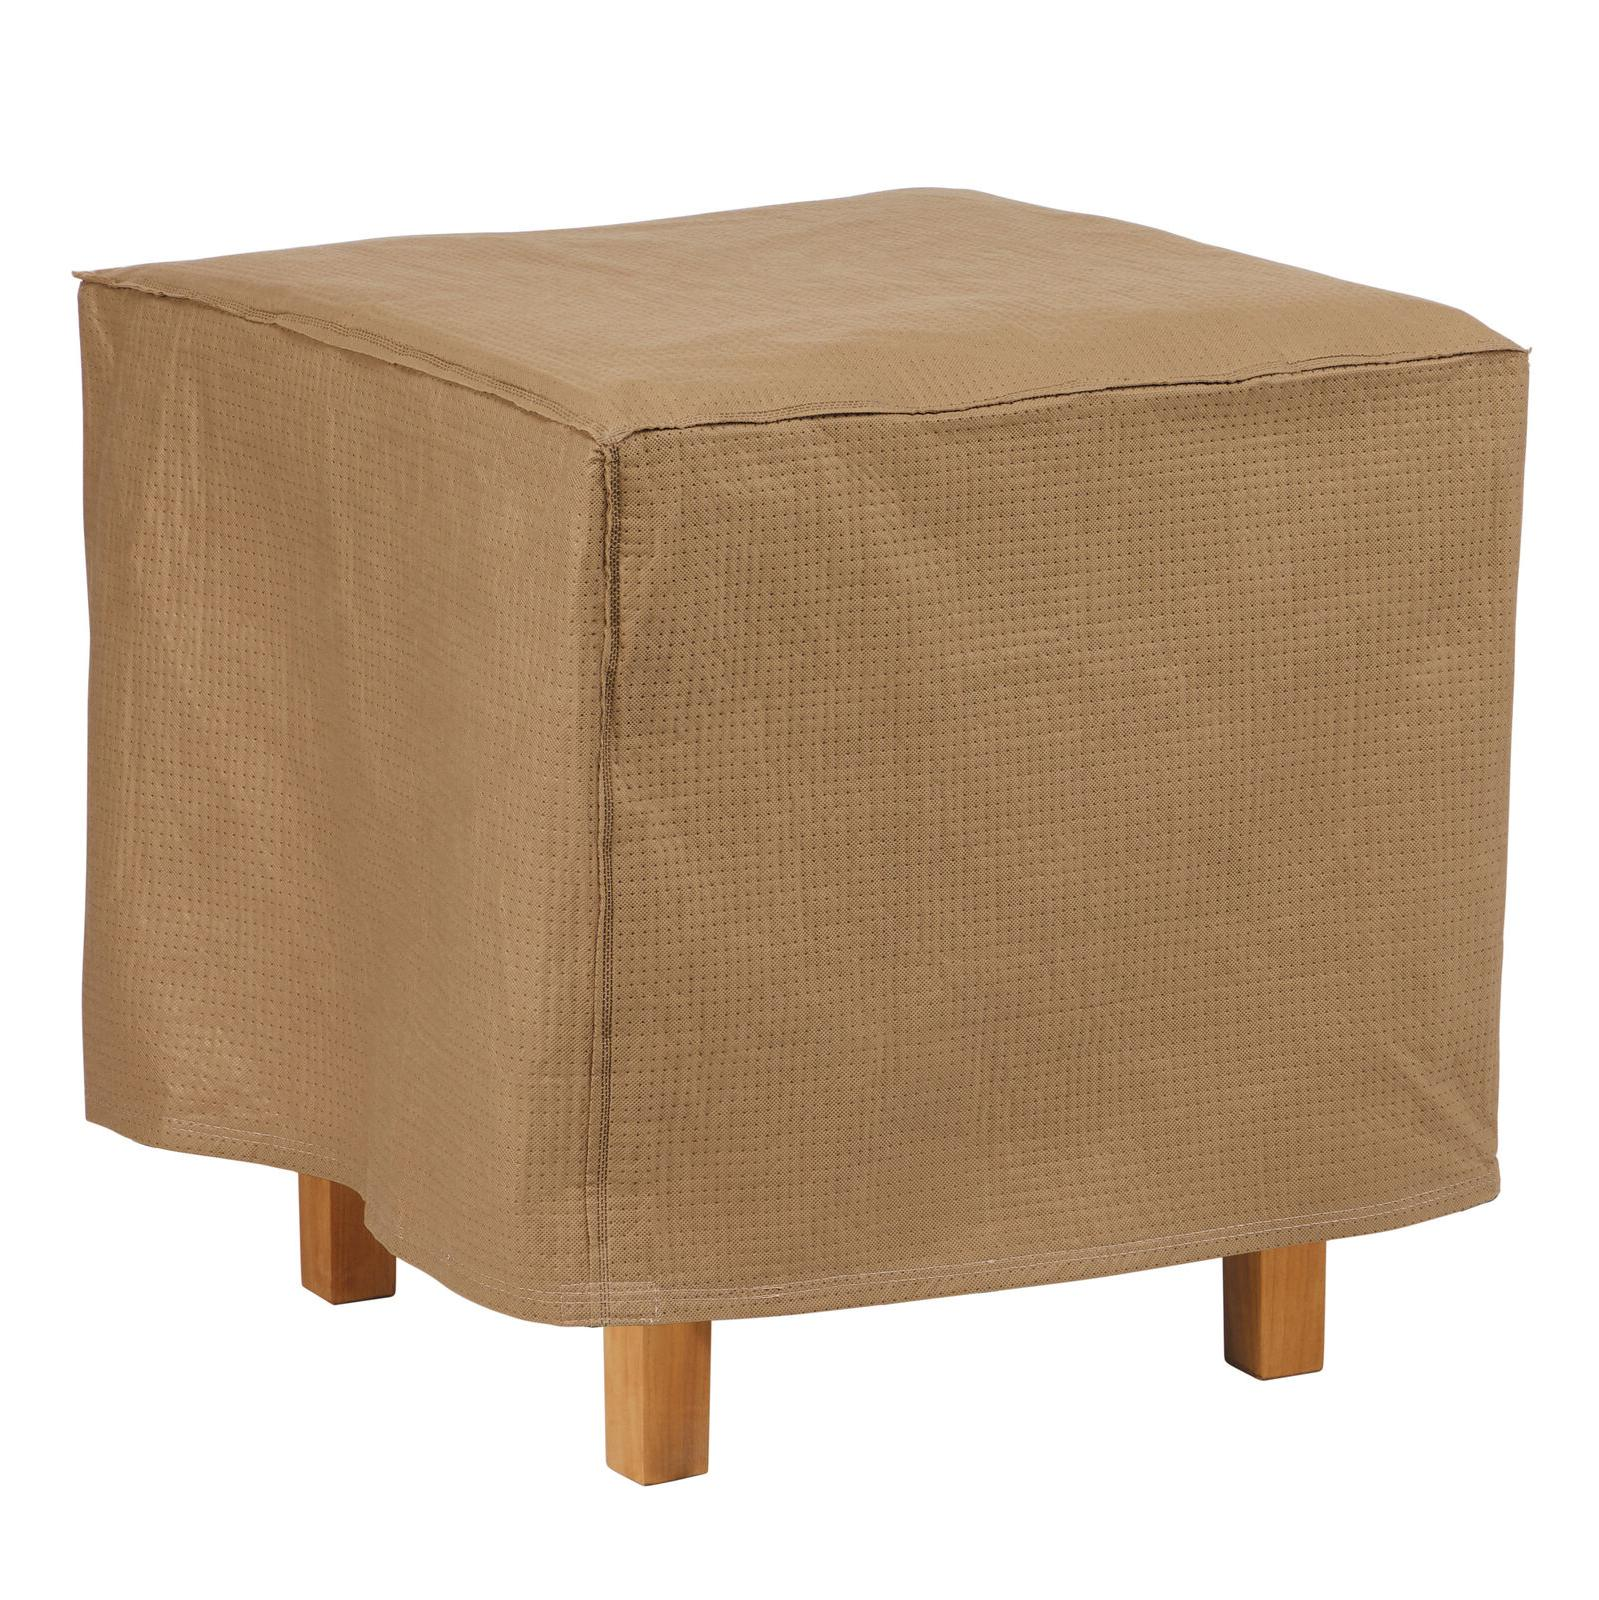 duck covers essential 22 square ottoman side